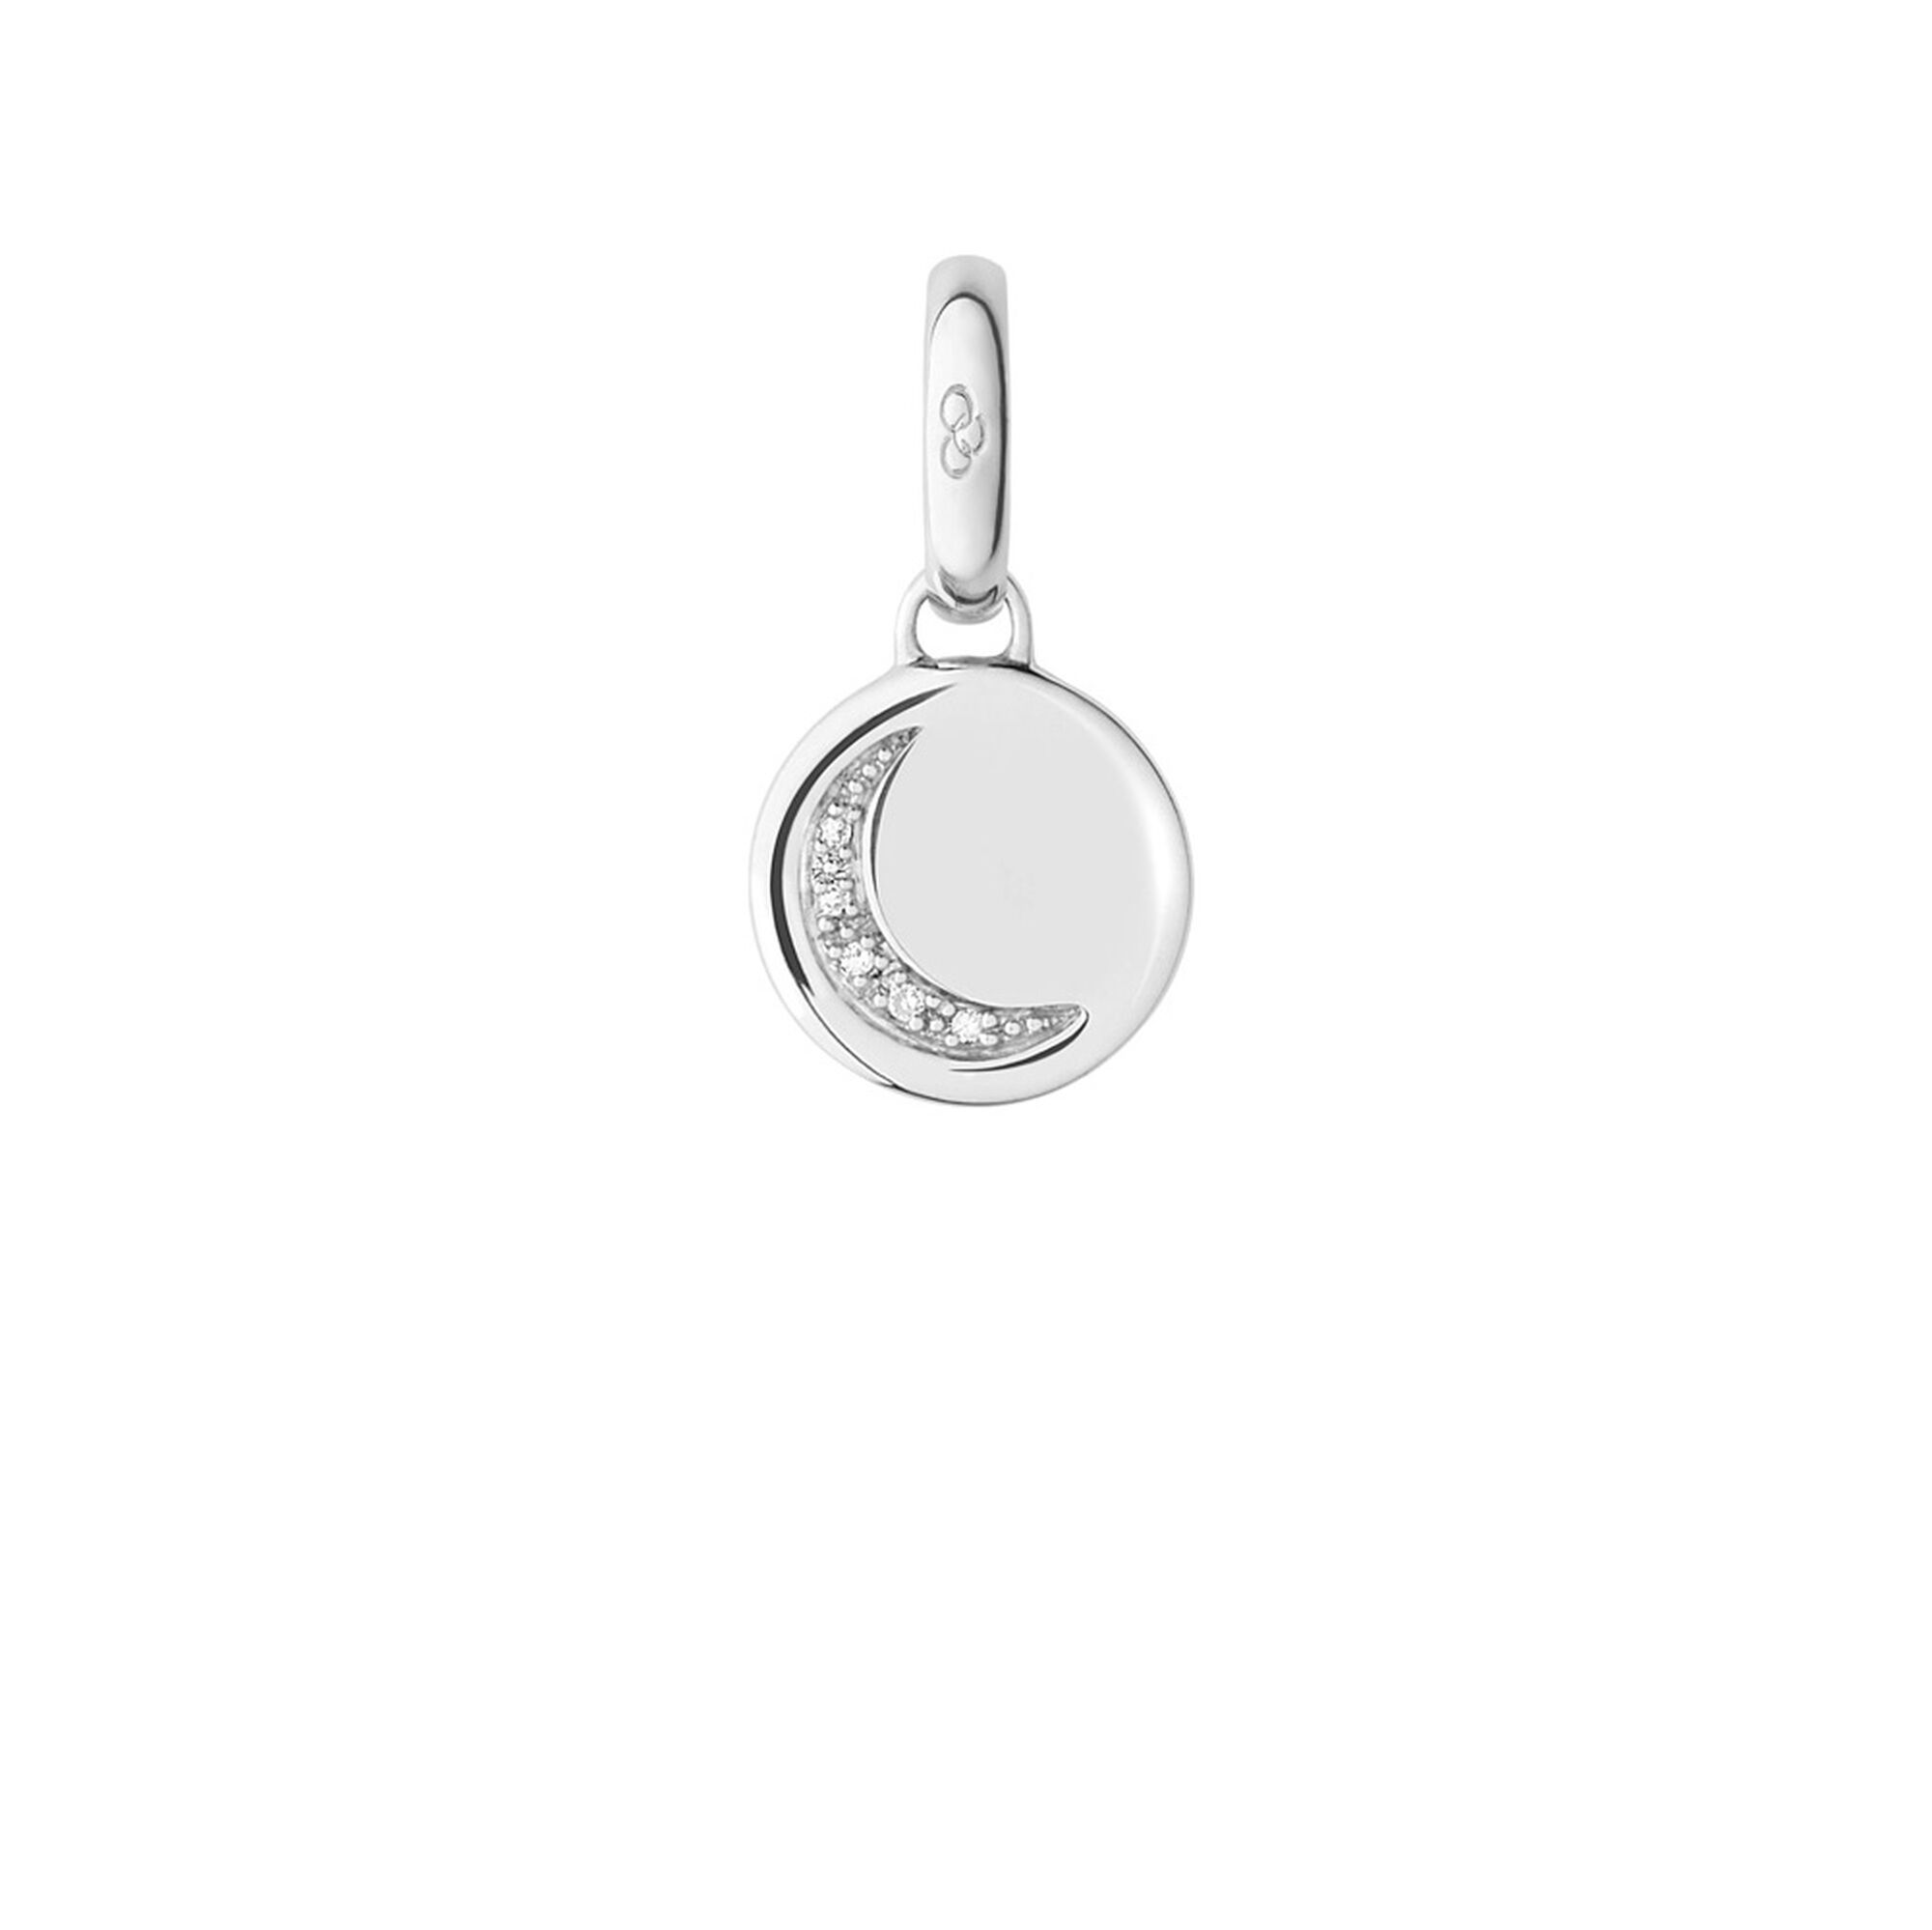 ride tredz moon designs collections collection a pendant half products girl like olivine